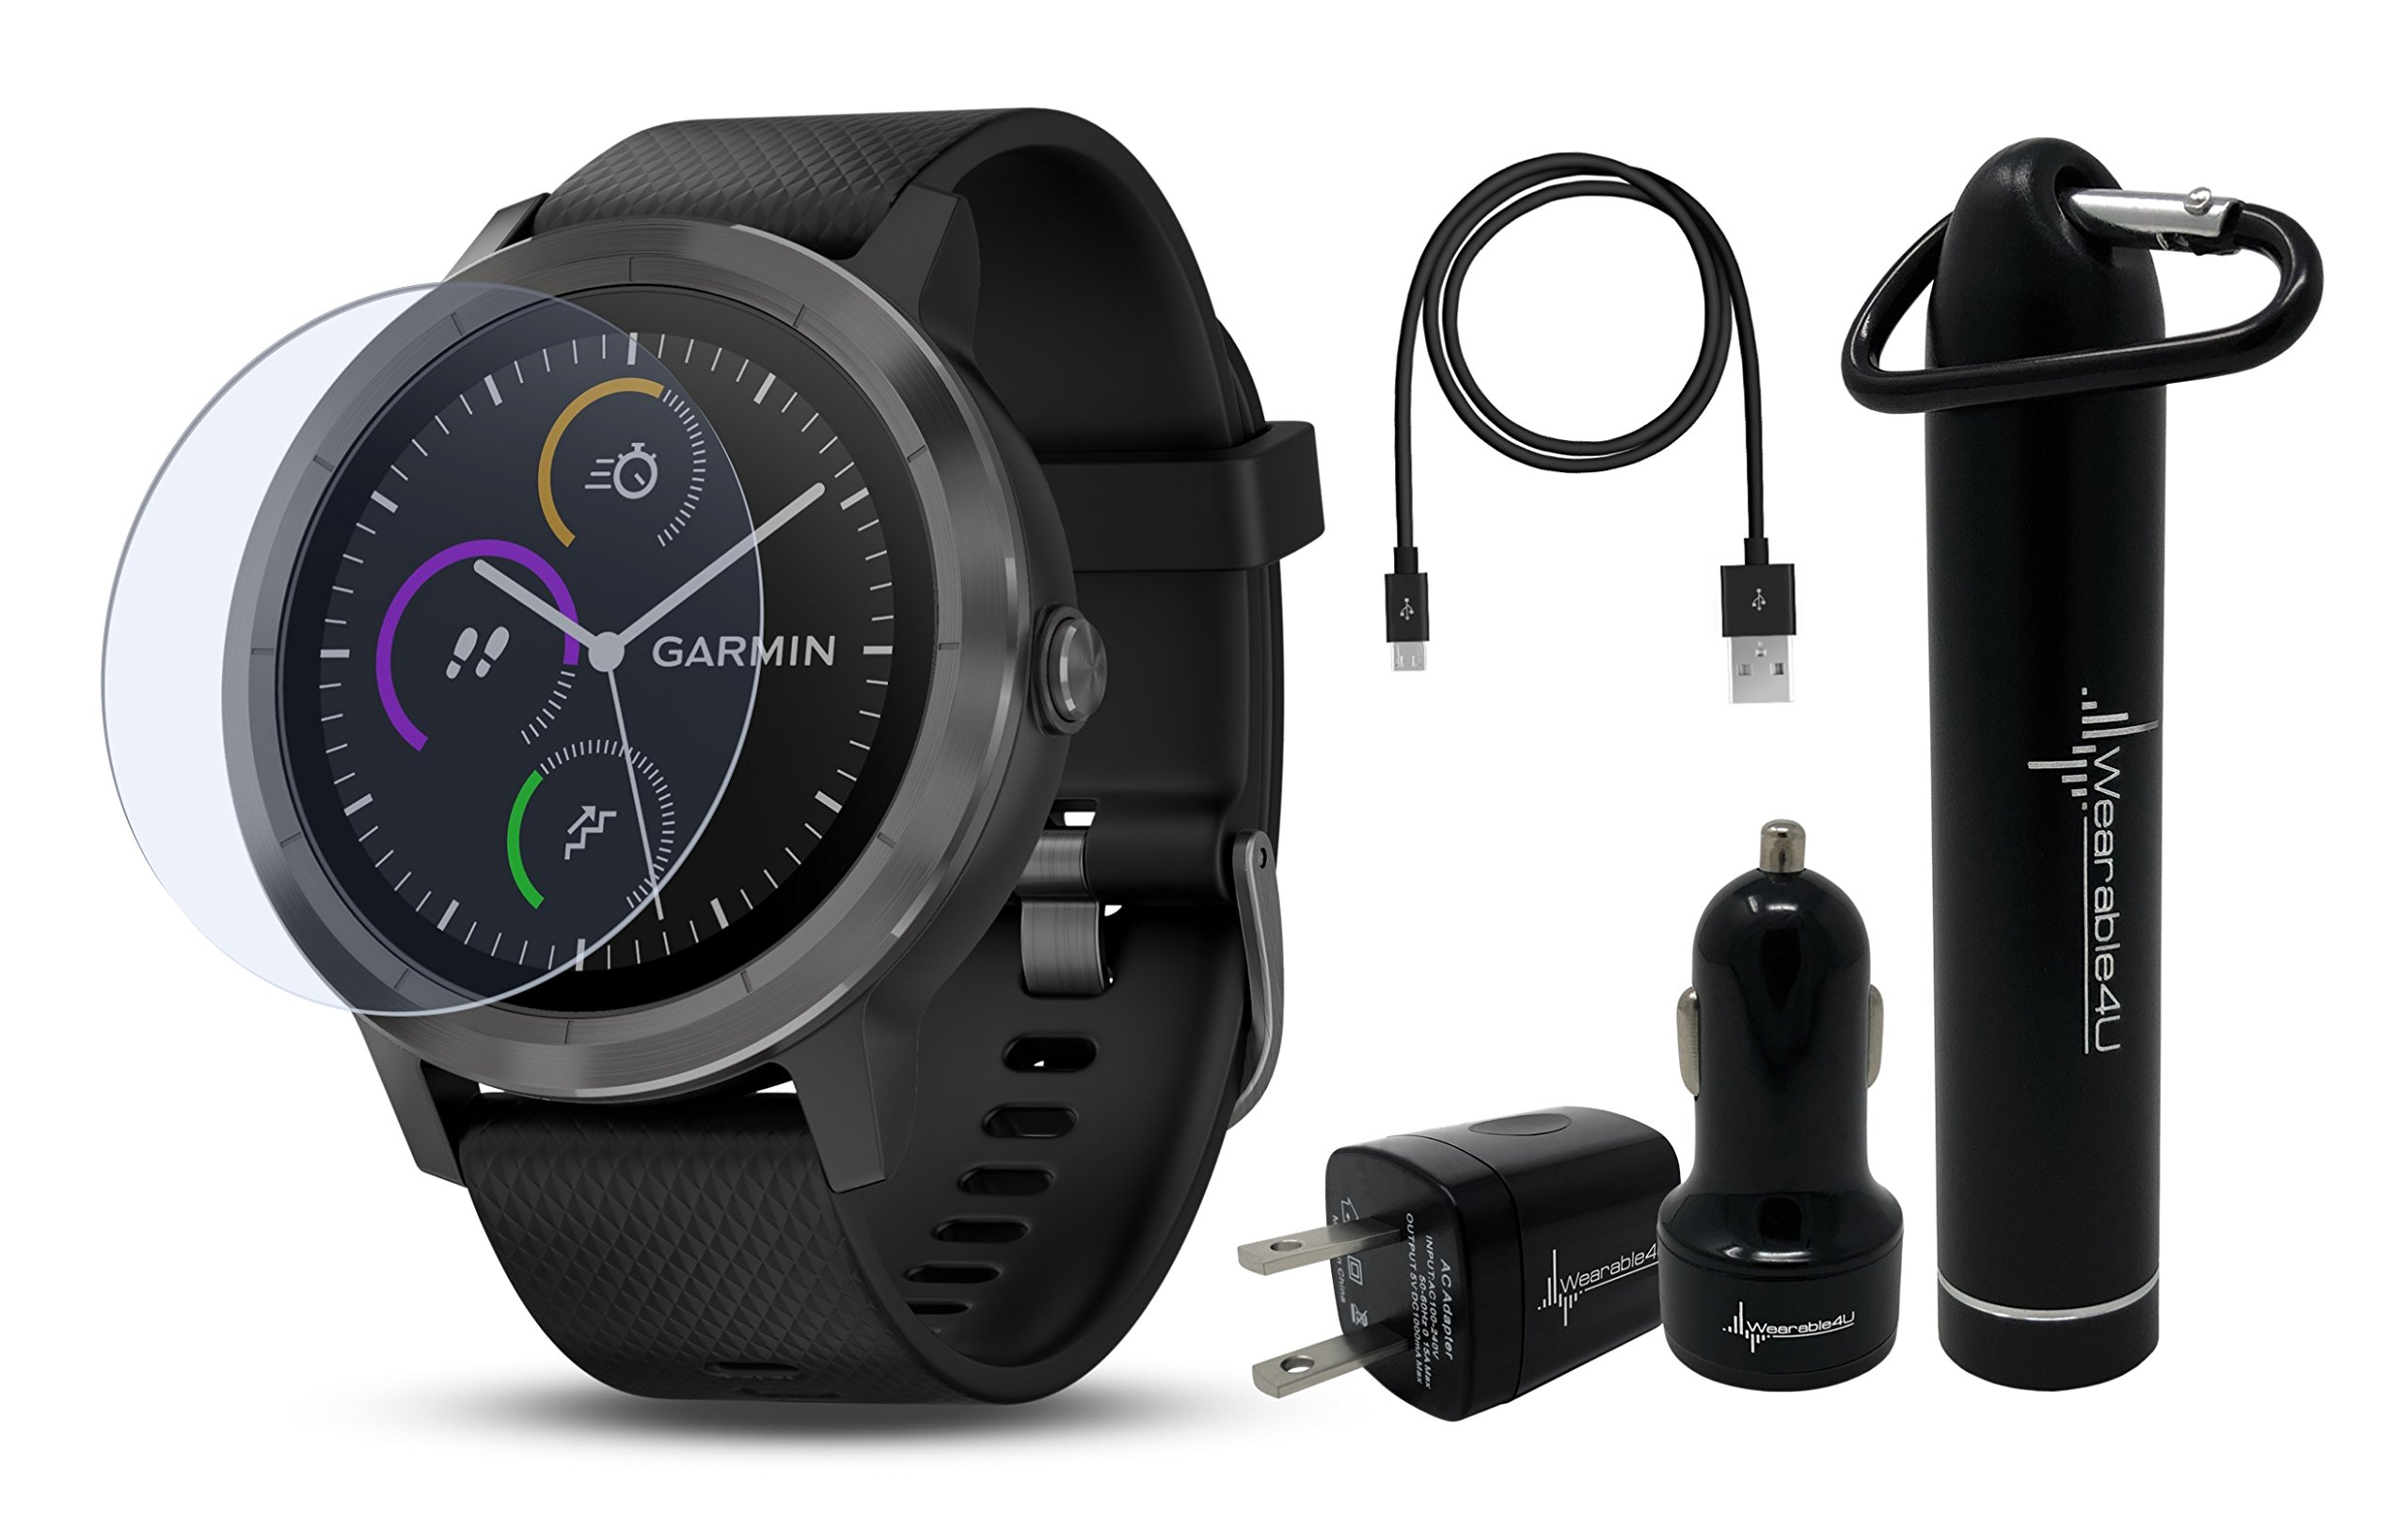 Garmin Vivoactive 3 GPS Smartwatch with Touchscreen Display and Contactless Payments Feature and Wrist-based Heart Rate and Wearable4U Ultimate Power Pack Bundle (Black/Slate)